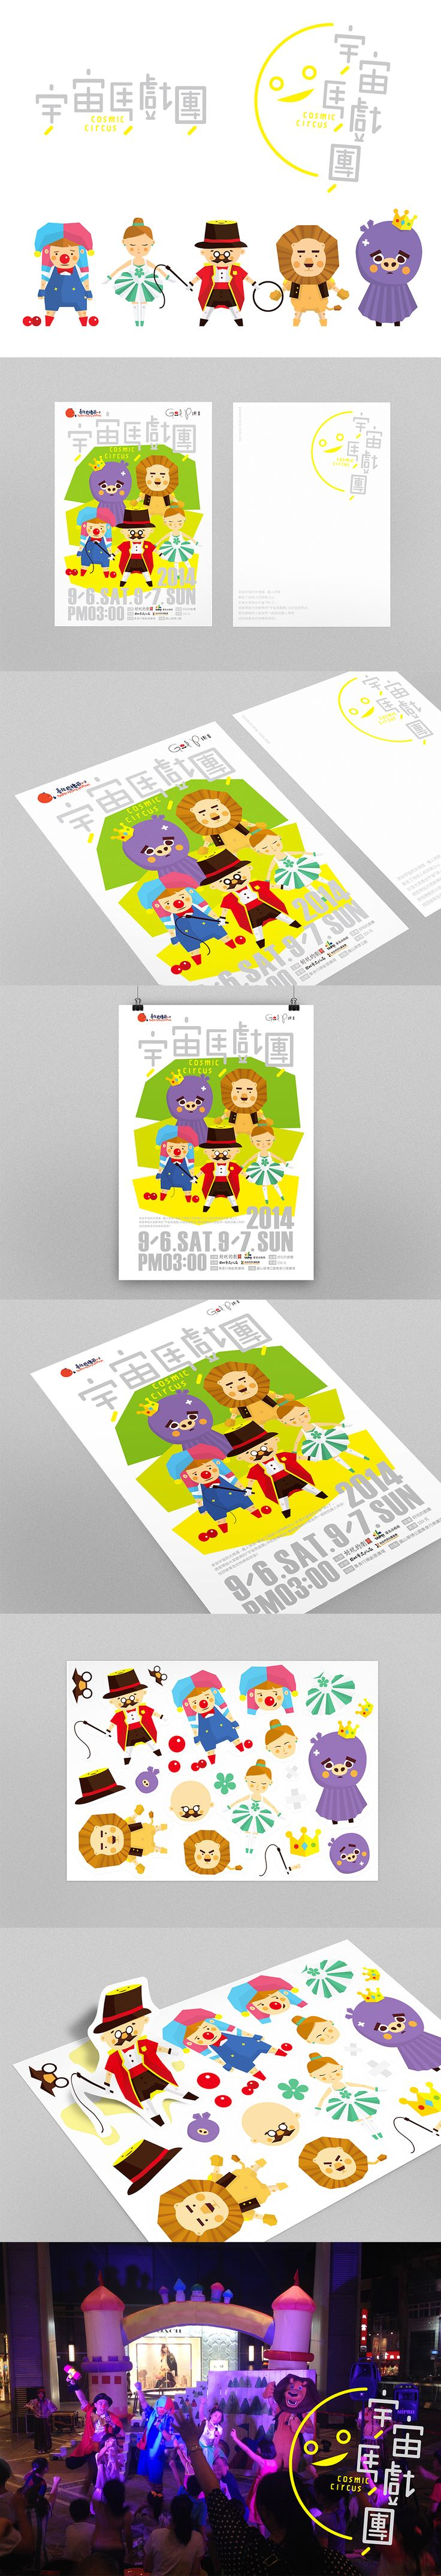 """Cosmic Circus -  Chinese typography, logotype, character, illustration, poster, card, sticker, custom, graphic design by Cheng-Tsung Feng (http://www.chengtsung.com/) - """"Cosmic Circus"""" is a children's drama show by a Taiwanese children's theatre """"Good Play Troupe""""."""